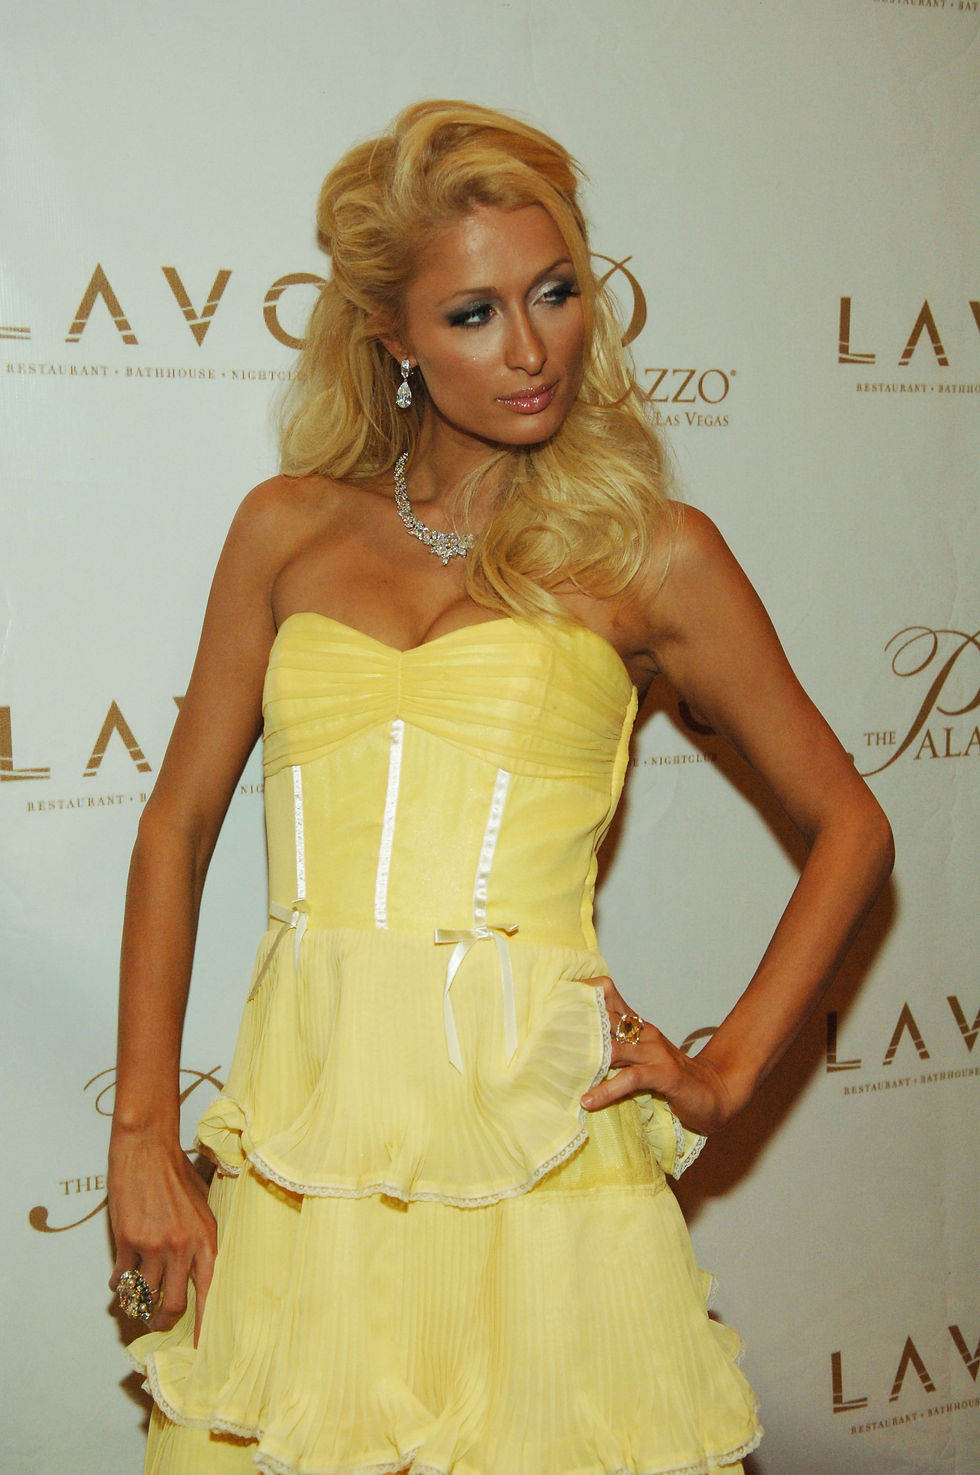 paris-hilton-grand-opening-of-lavo-restaurant-and-nightclub-in-las-vegas-01